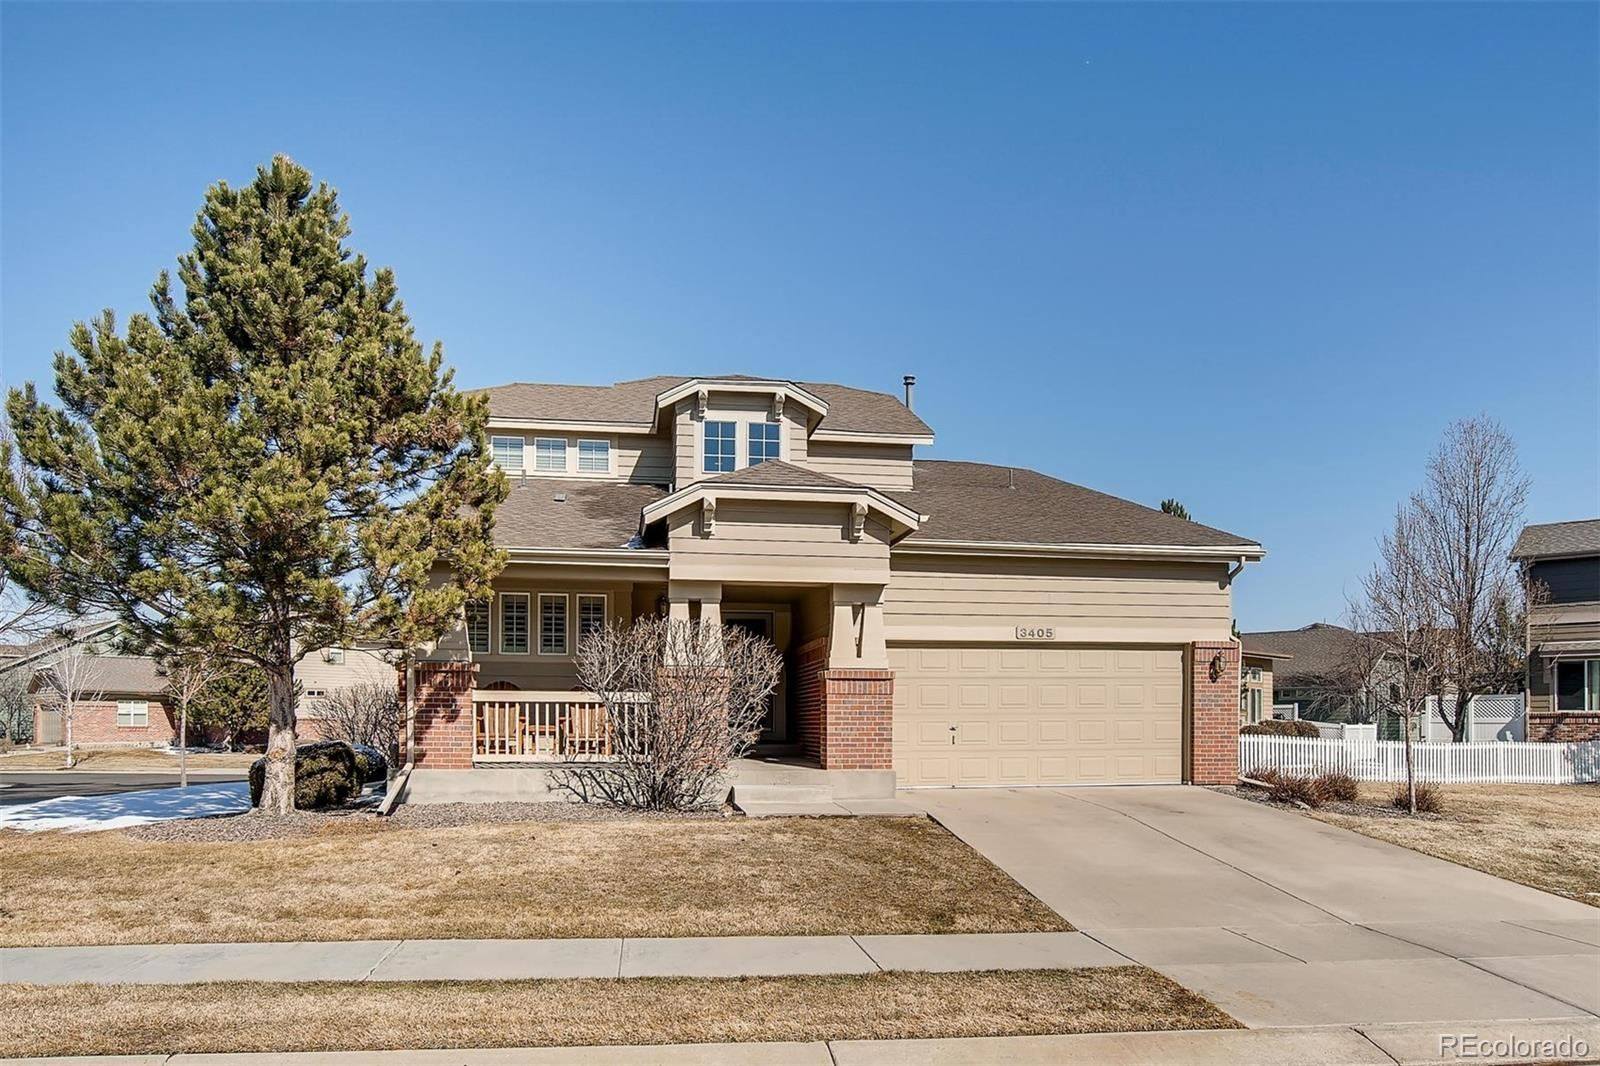 3405 W 126th Place, Broomfield, CO 80020 - #: 3677211